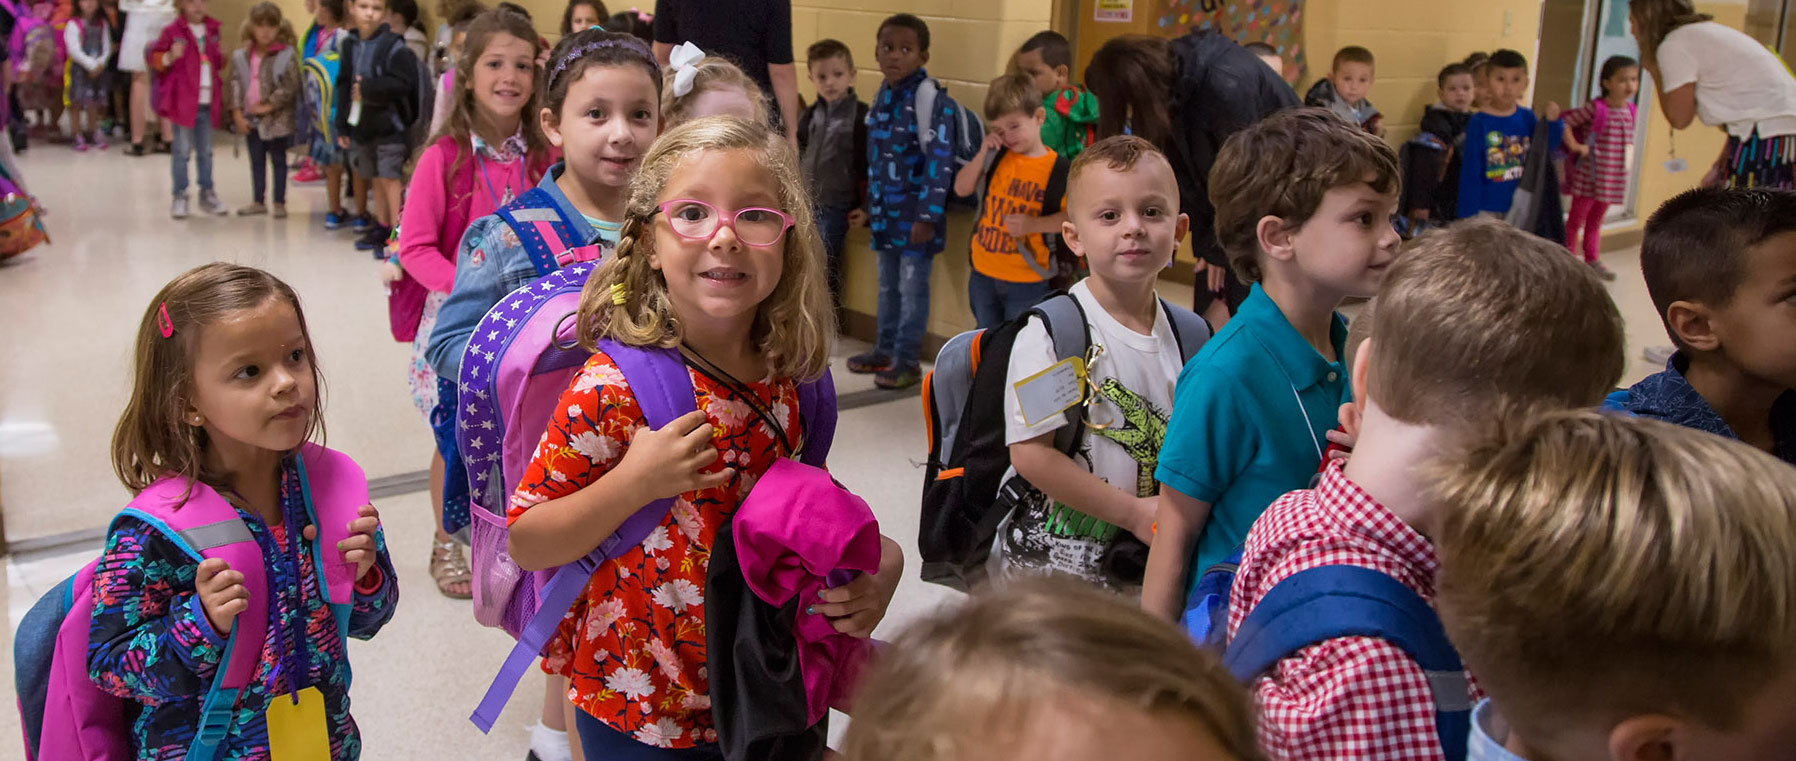 a school hallway of kindergarten students on the first day of school